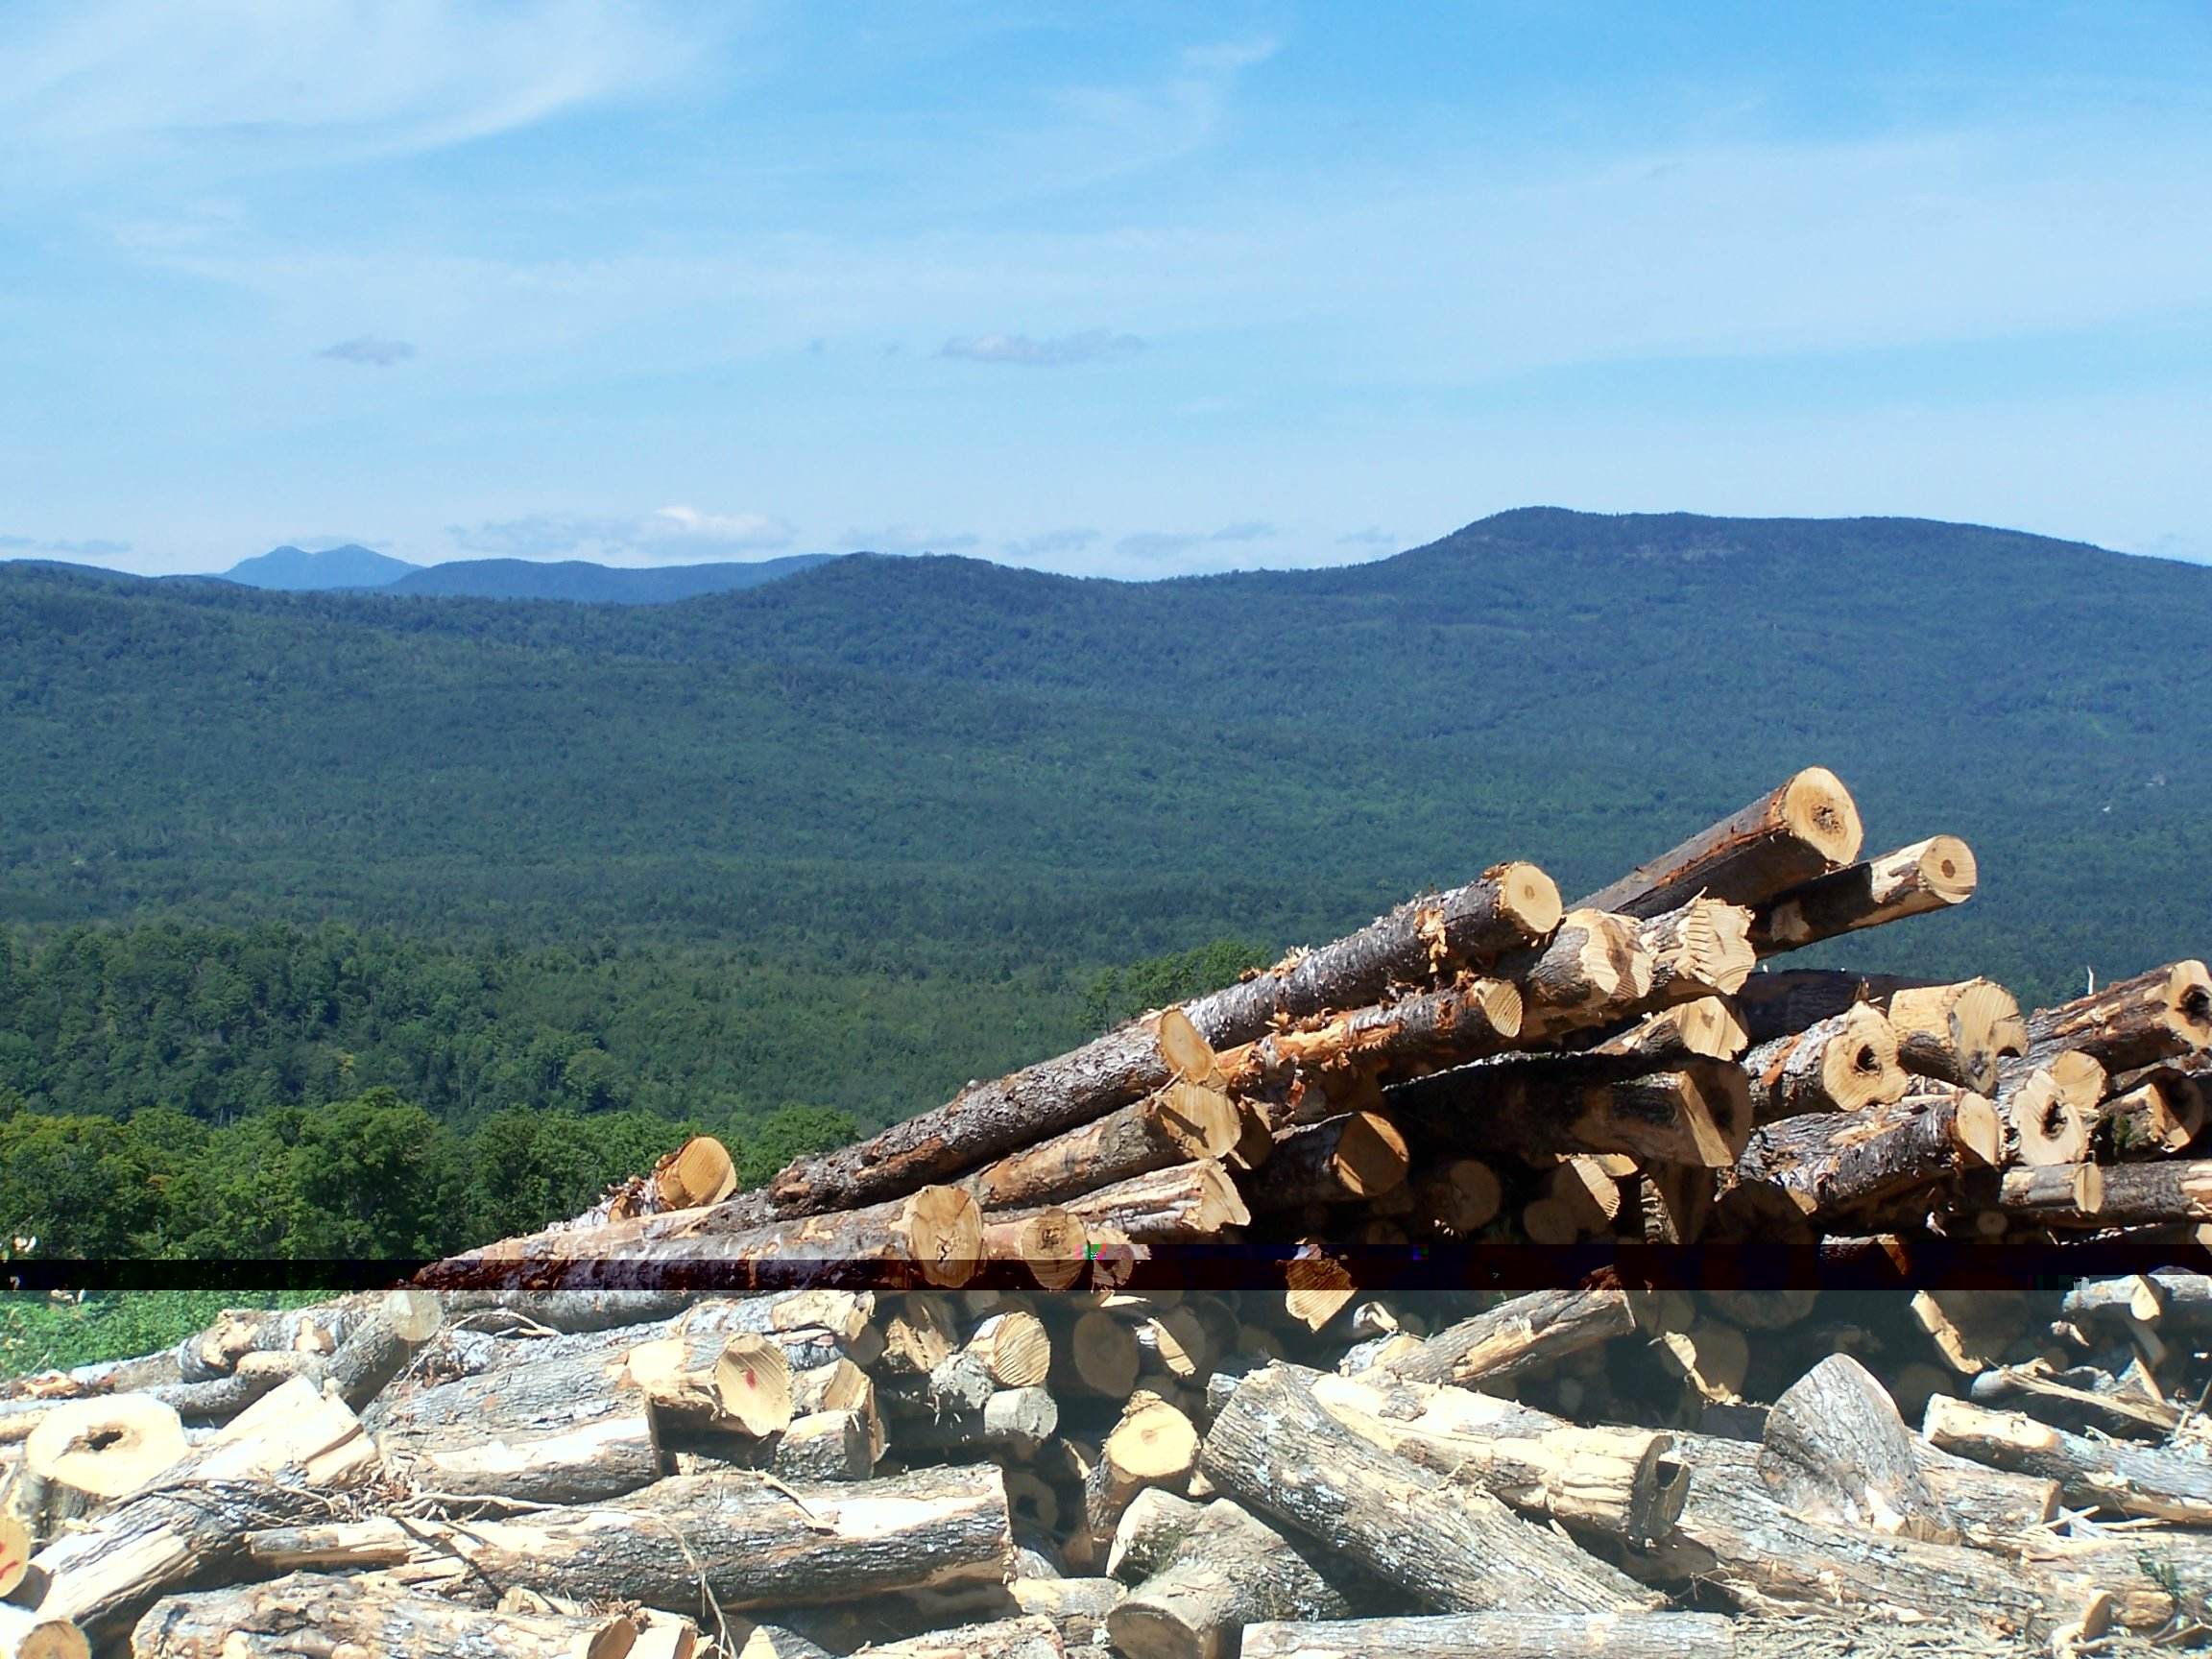 Logging is major industry in these mountains